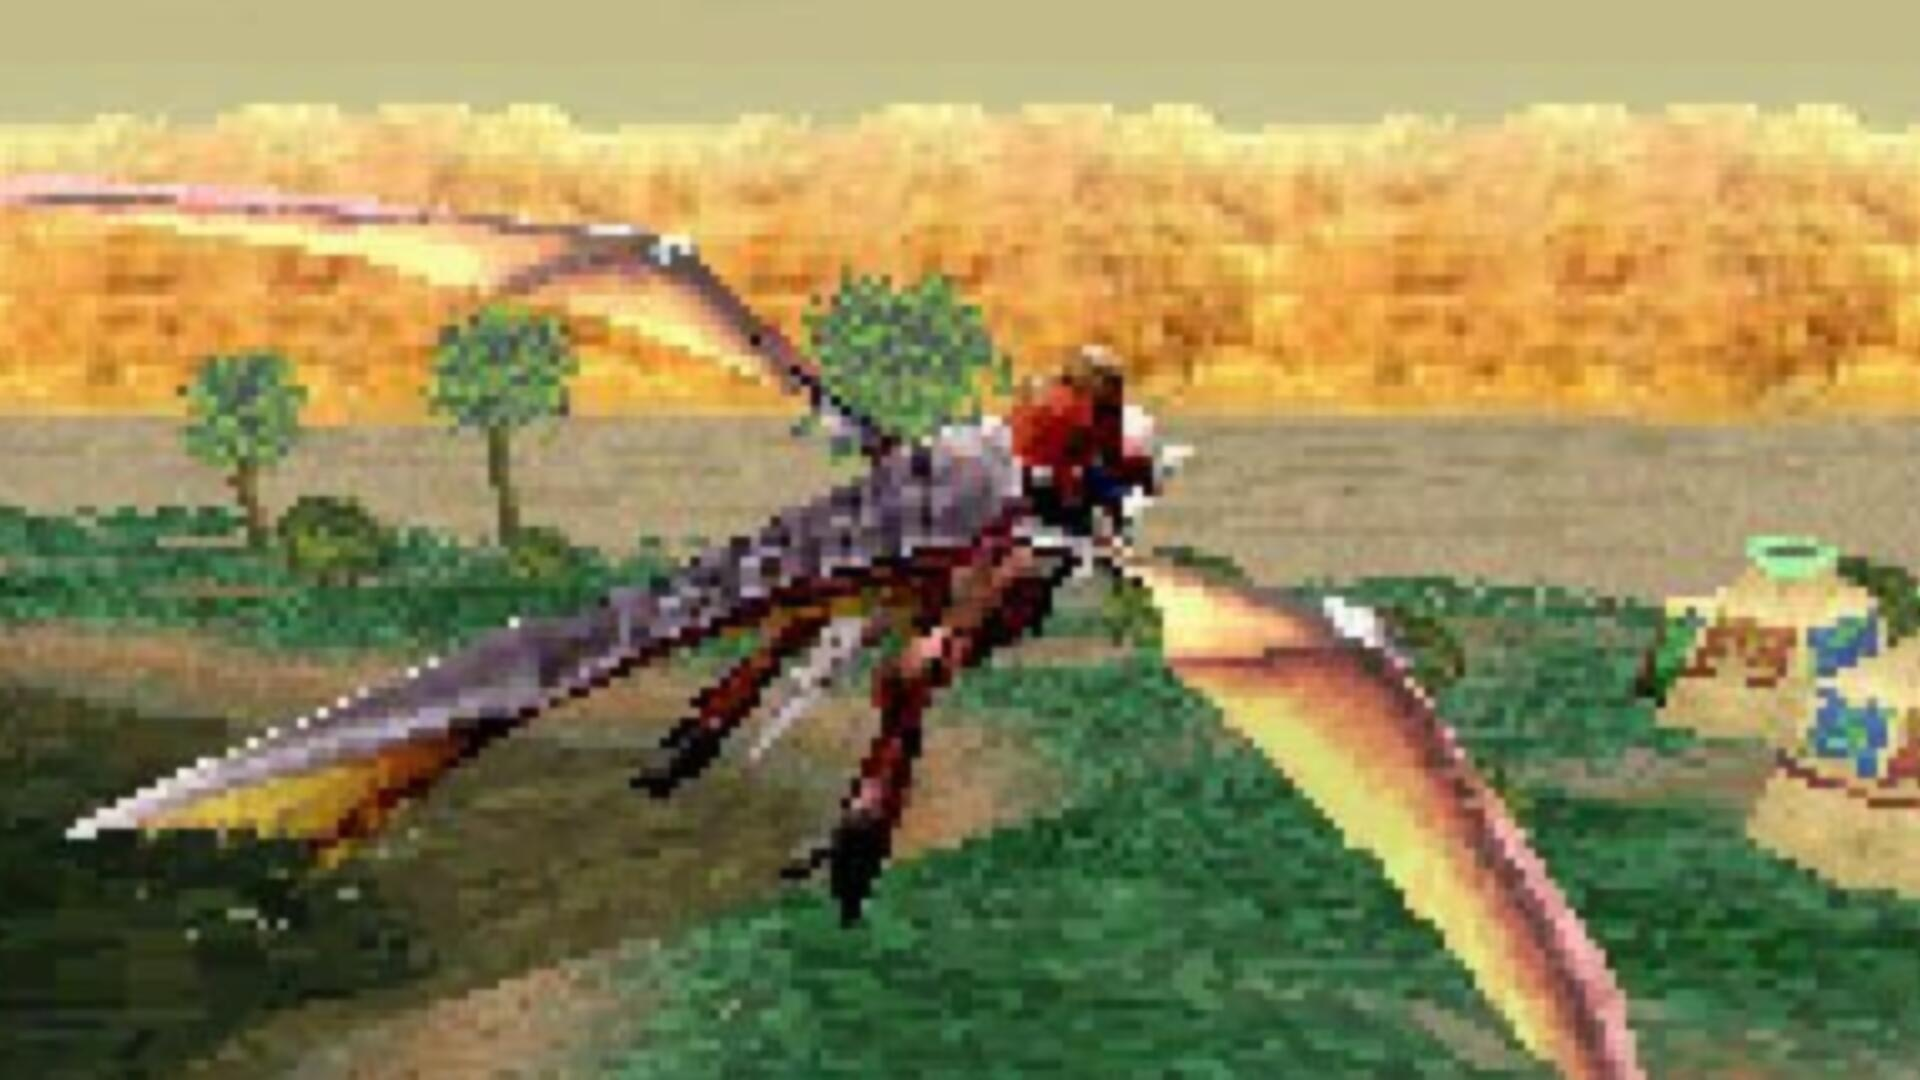 Panzer Dragoon Saga Creator's Ideas for a Remake: More Player Choice and a Souls-Like Online Component